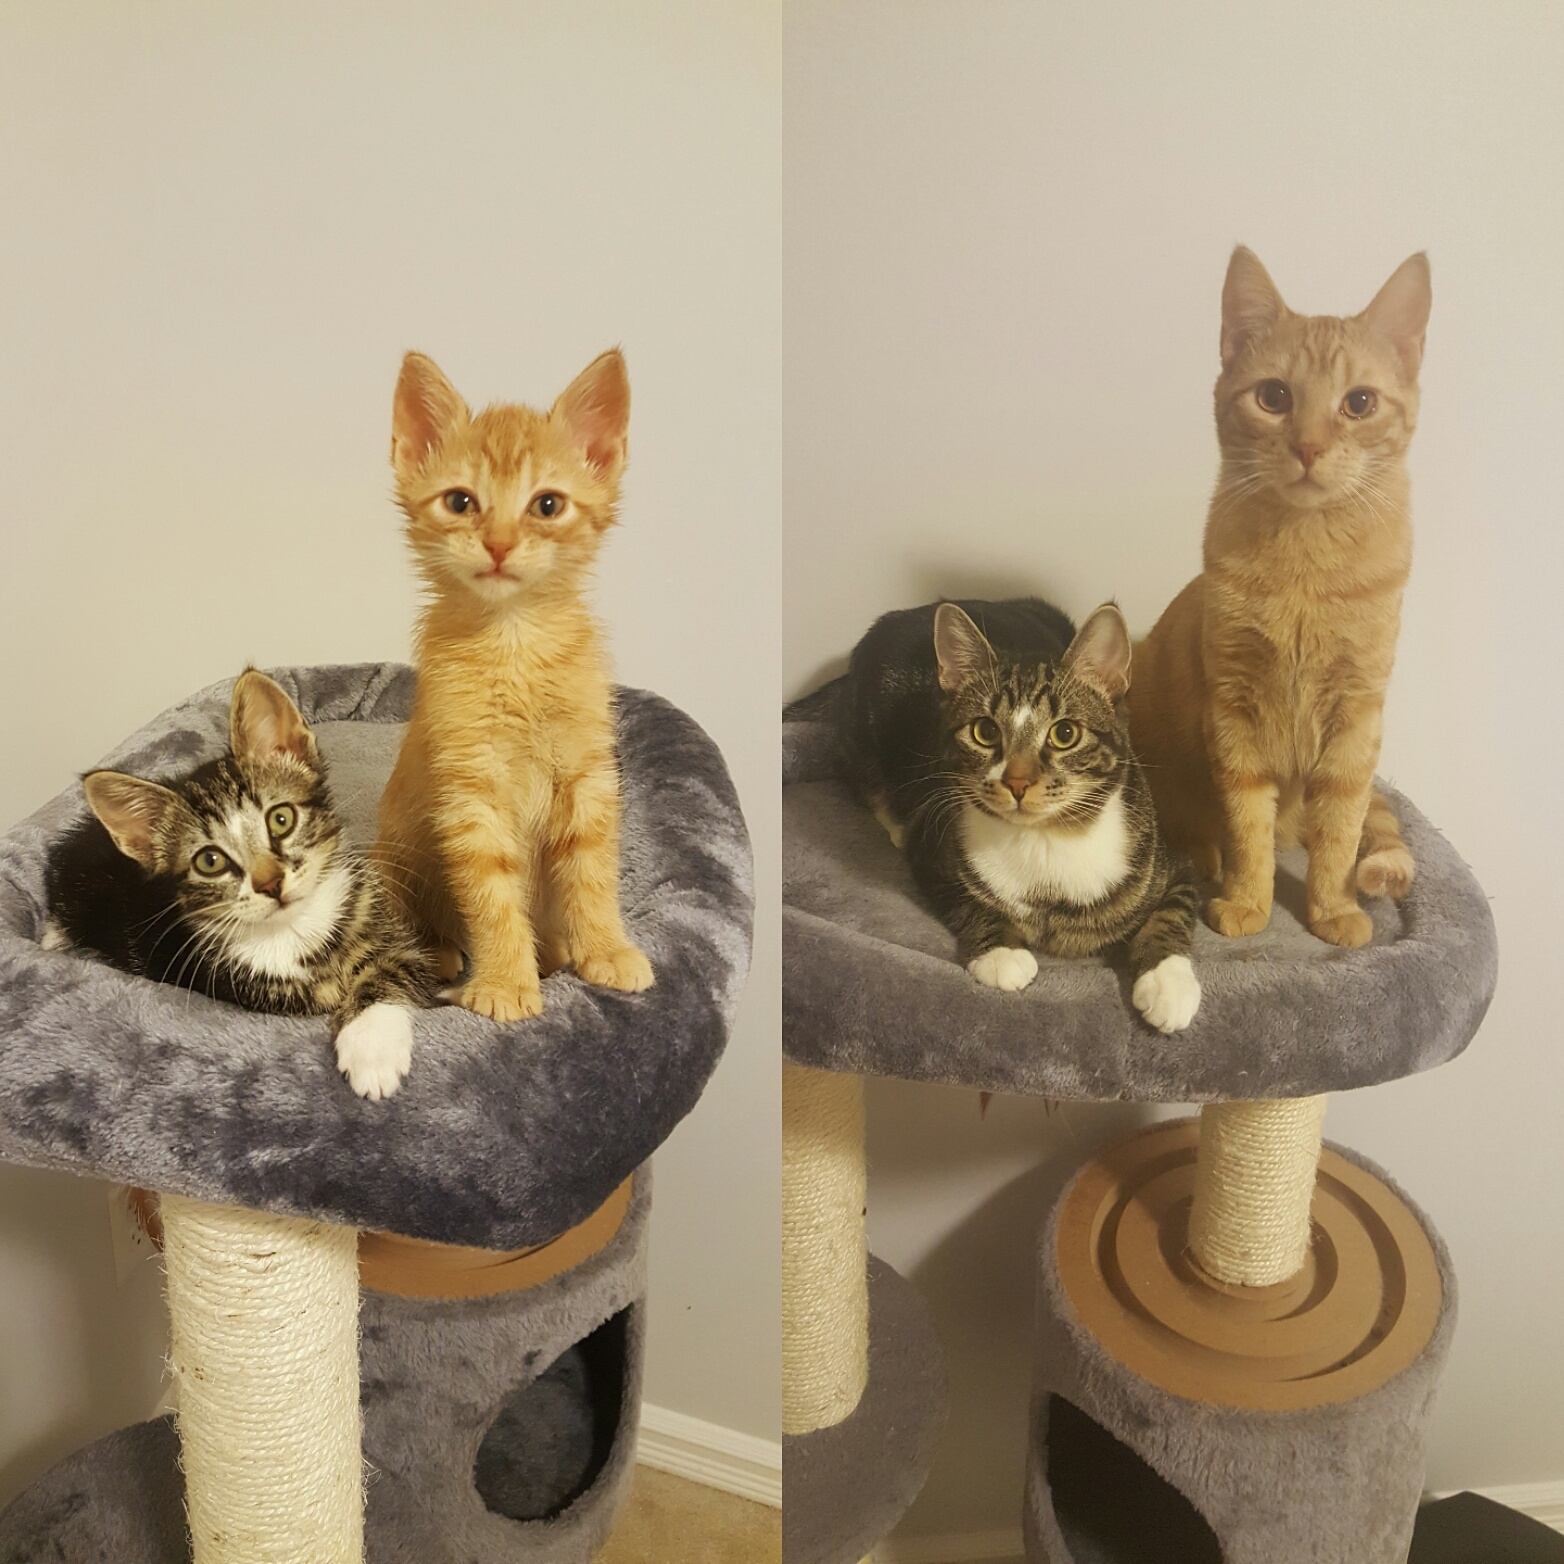 kittens to cats then and now